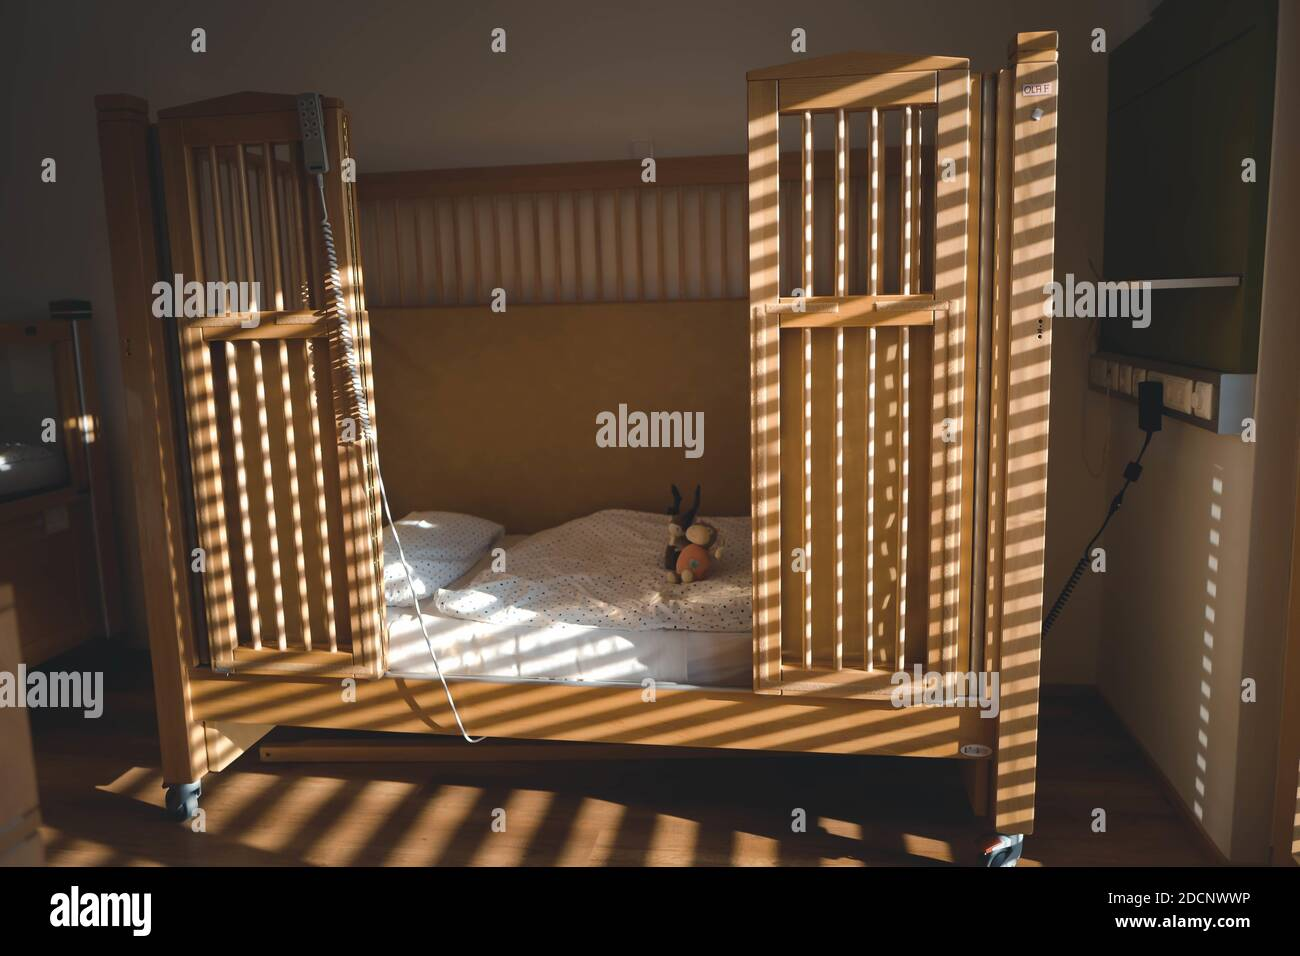 Page 2 Empty Wooden Baby Cot High Resolution Stock Photography And Images Alamy